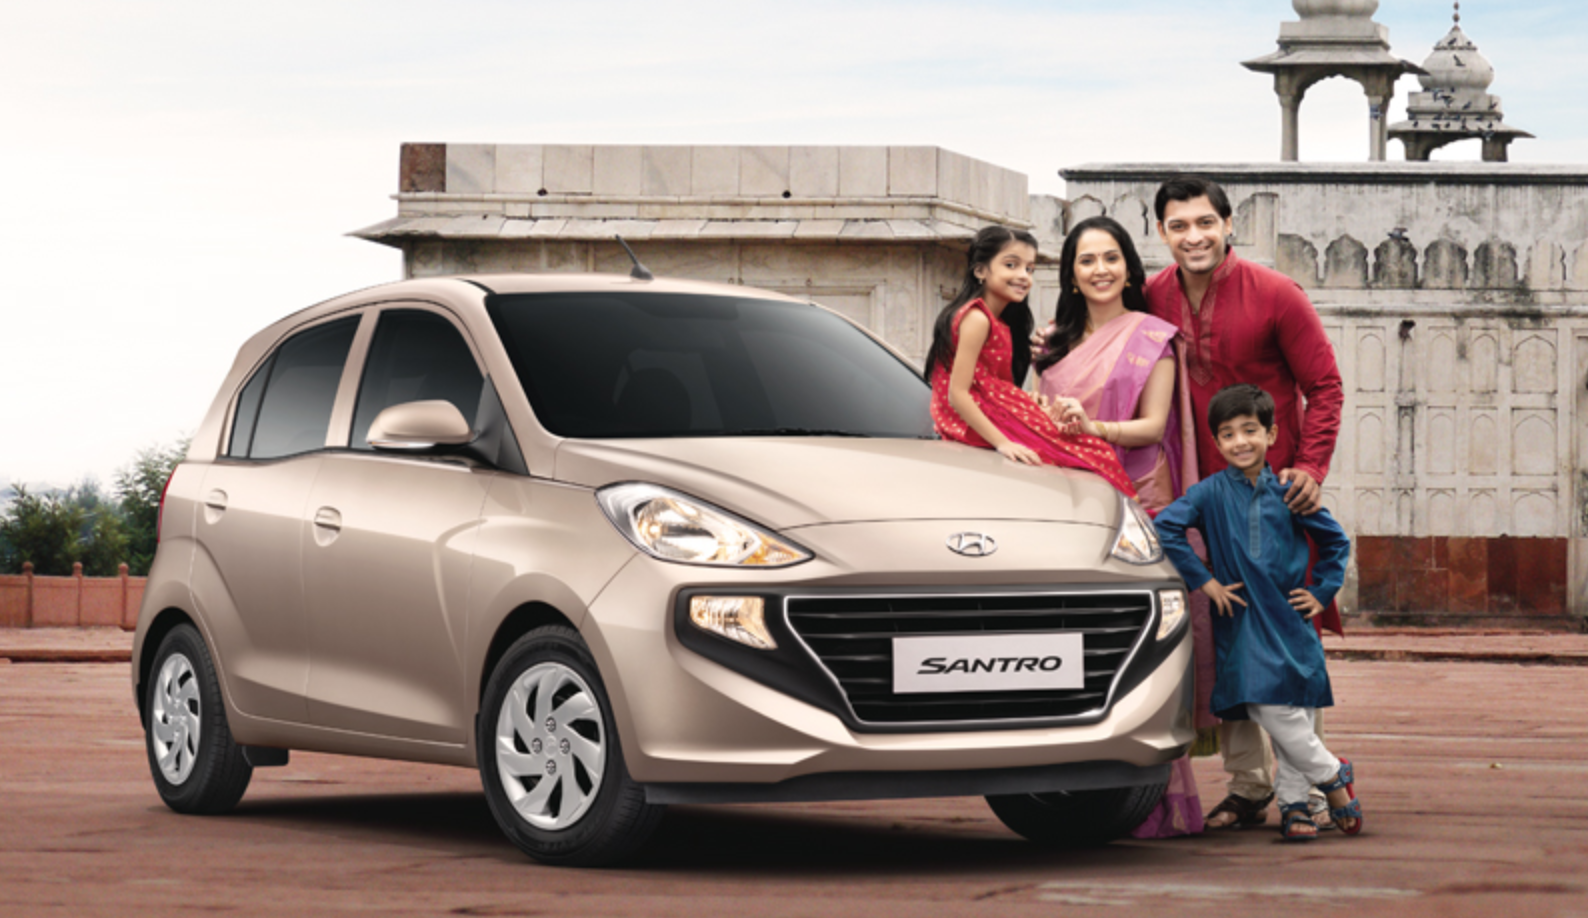 Hyundai Santro Price, Images, Specifications, Mileage, Colours, Petrol, CNG